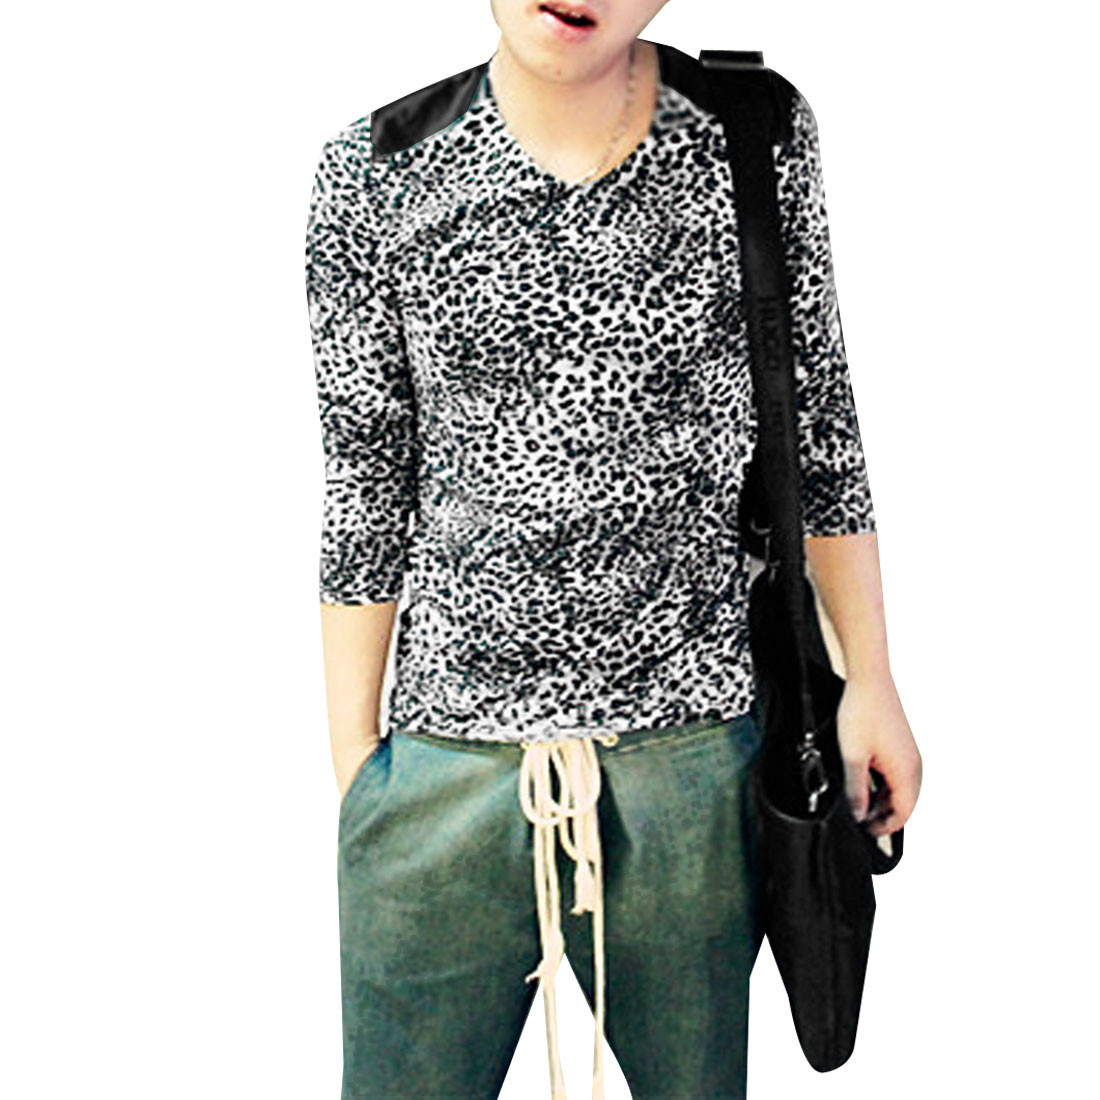 Mens White Black Gray Long Sleeve Splice Shoulder Leopard Prints Casual Tee Shirt XS